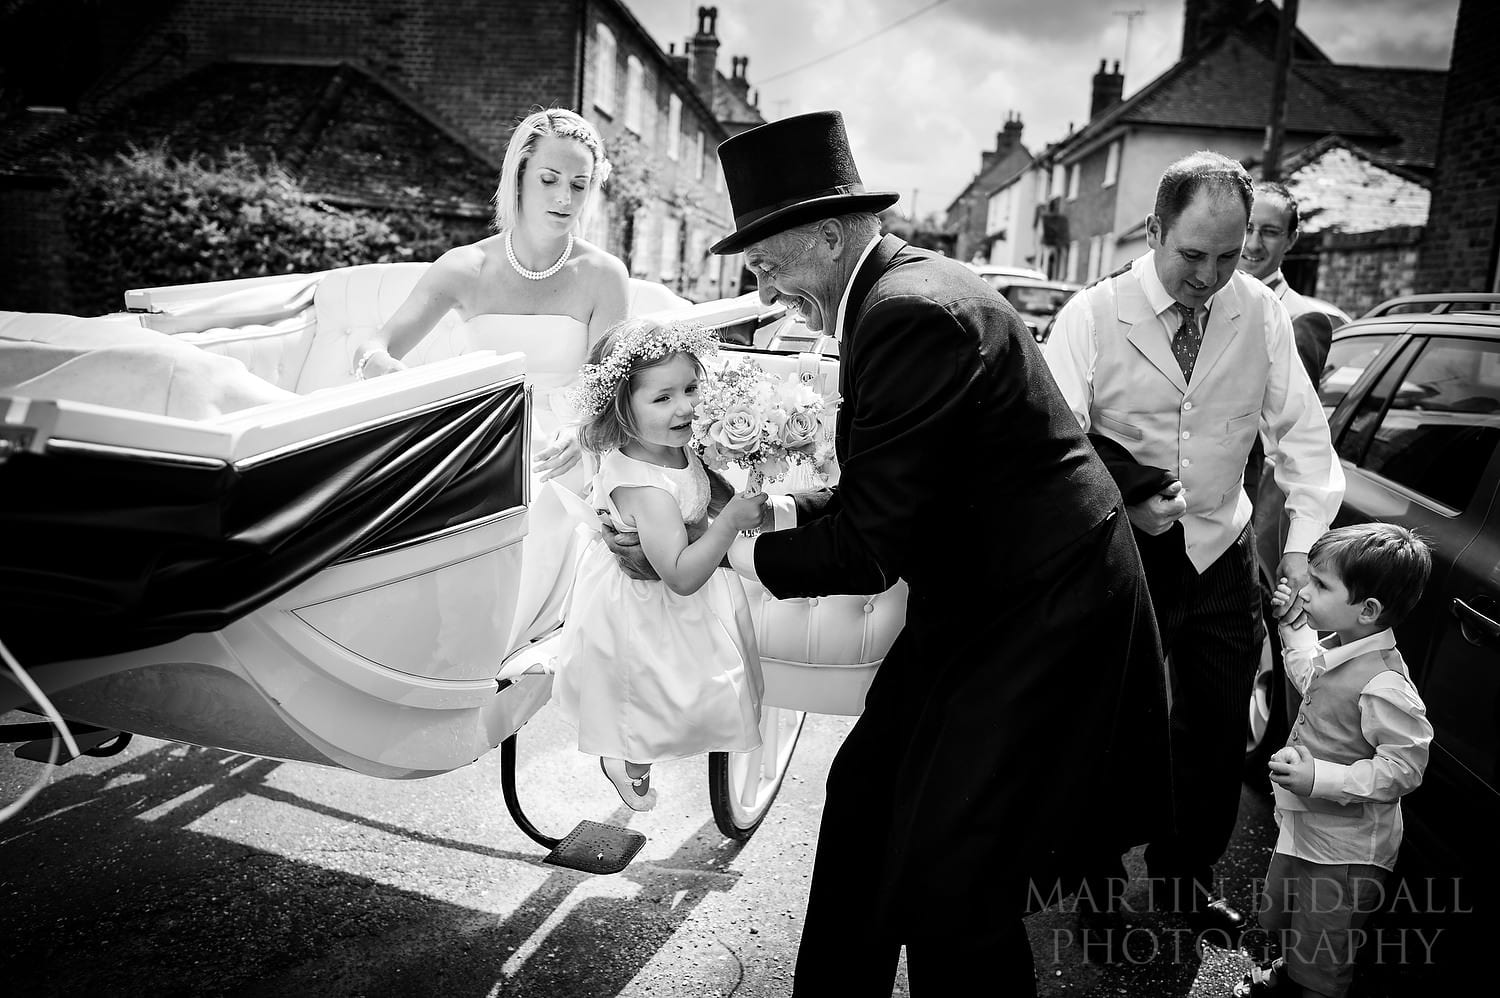 Flower girl lifted out of the carriage